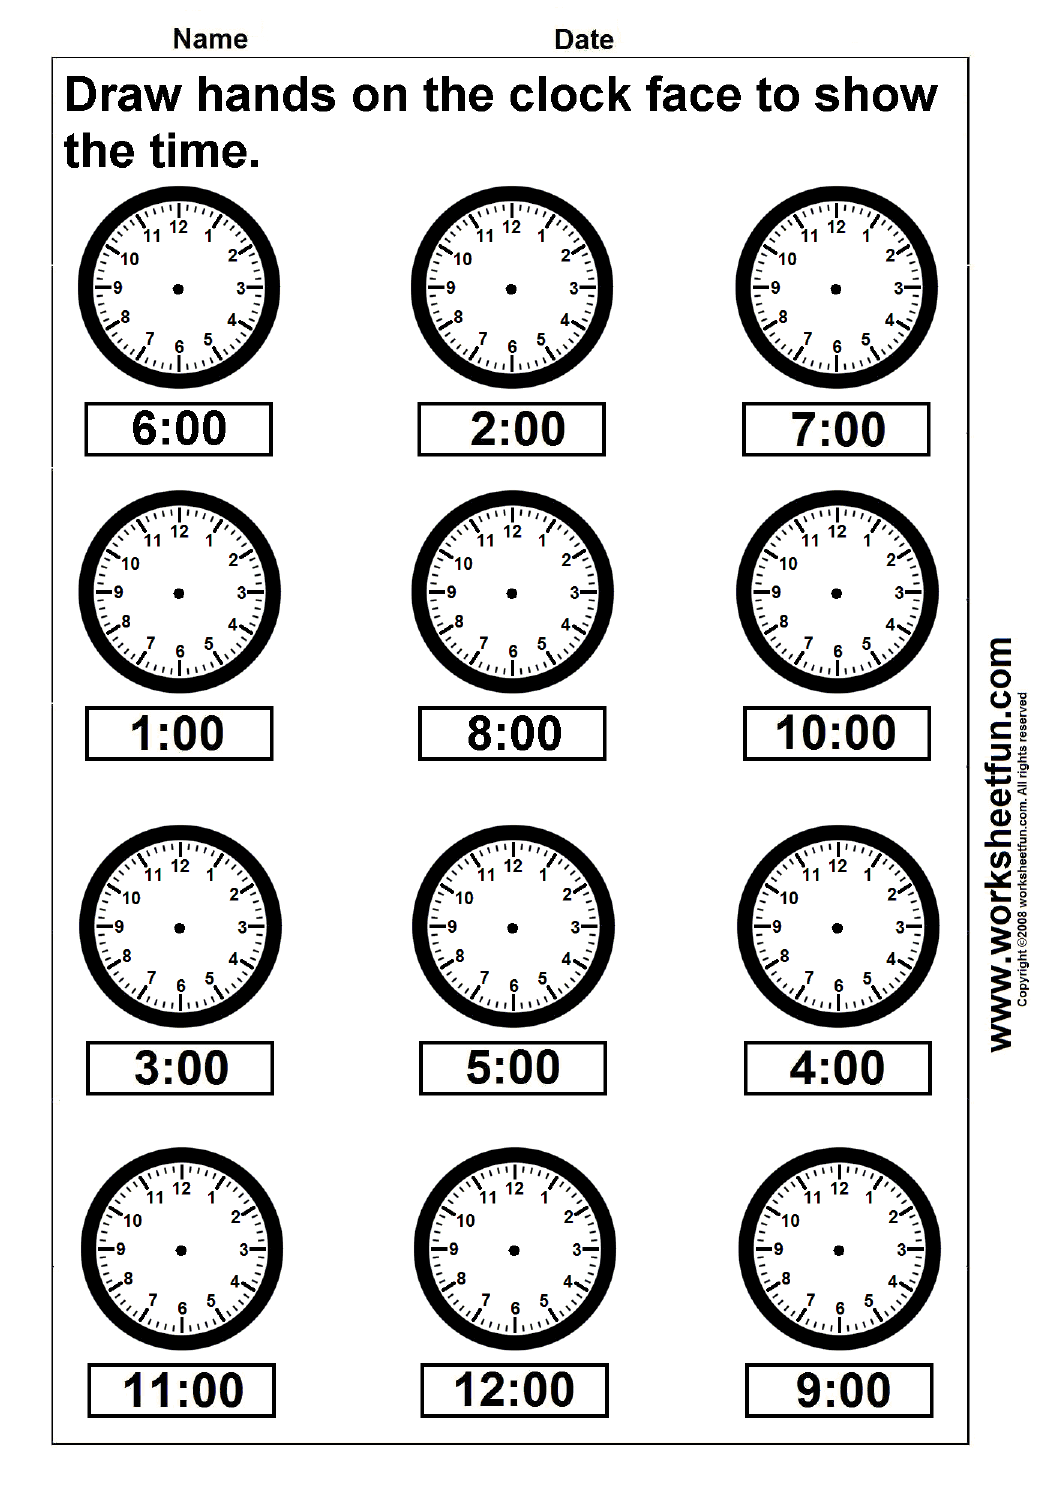 Time – Draw hands on the clock face